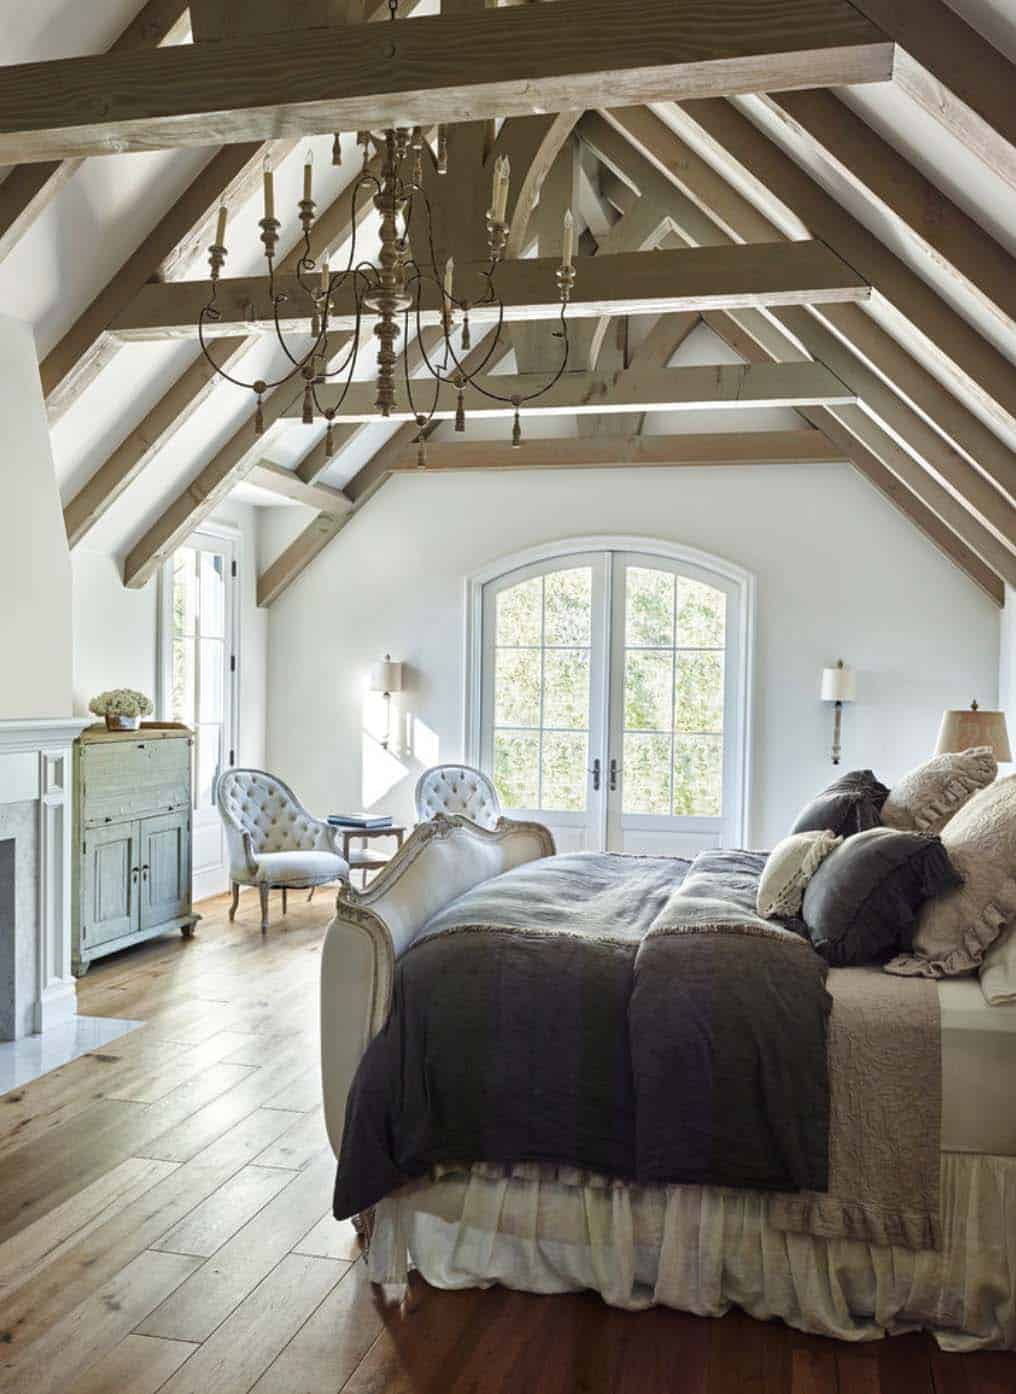 33 stunning master bedroom retreats with vaulted ceilings for Master bedrooms